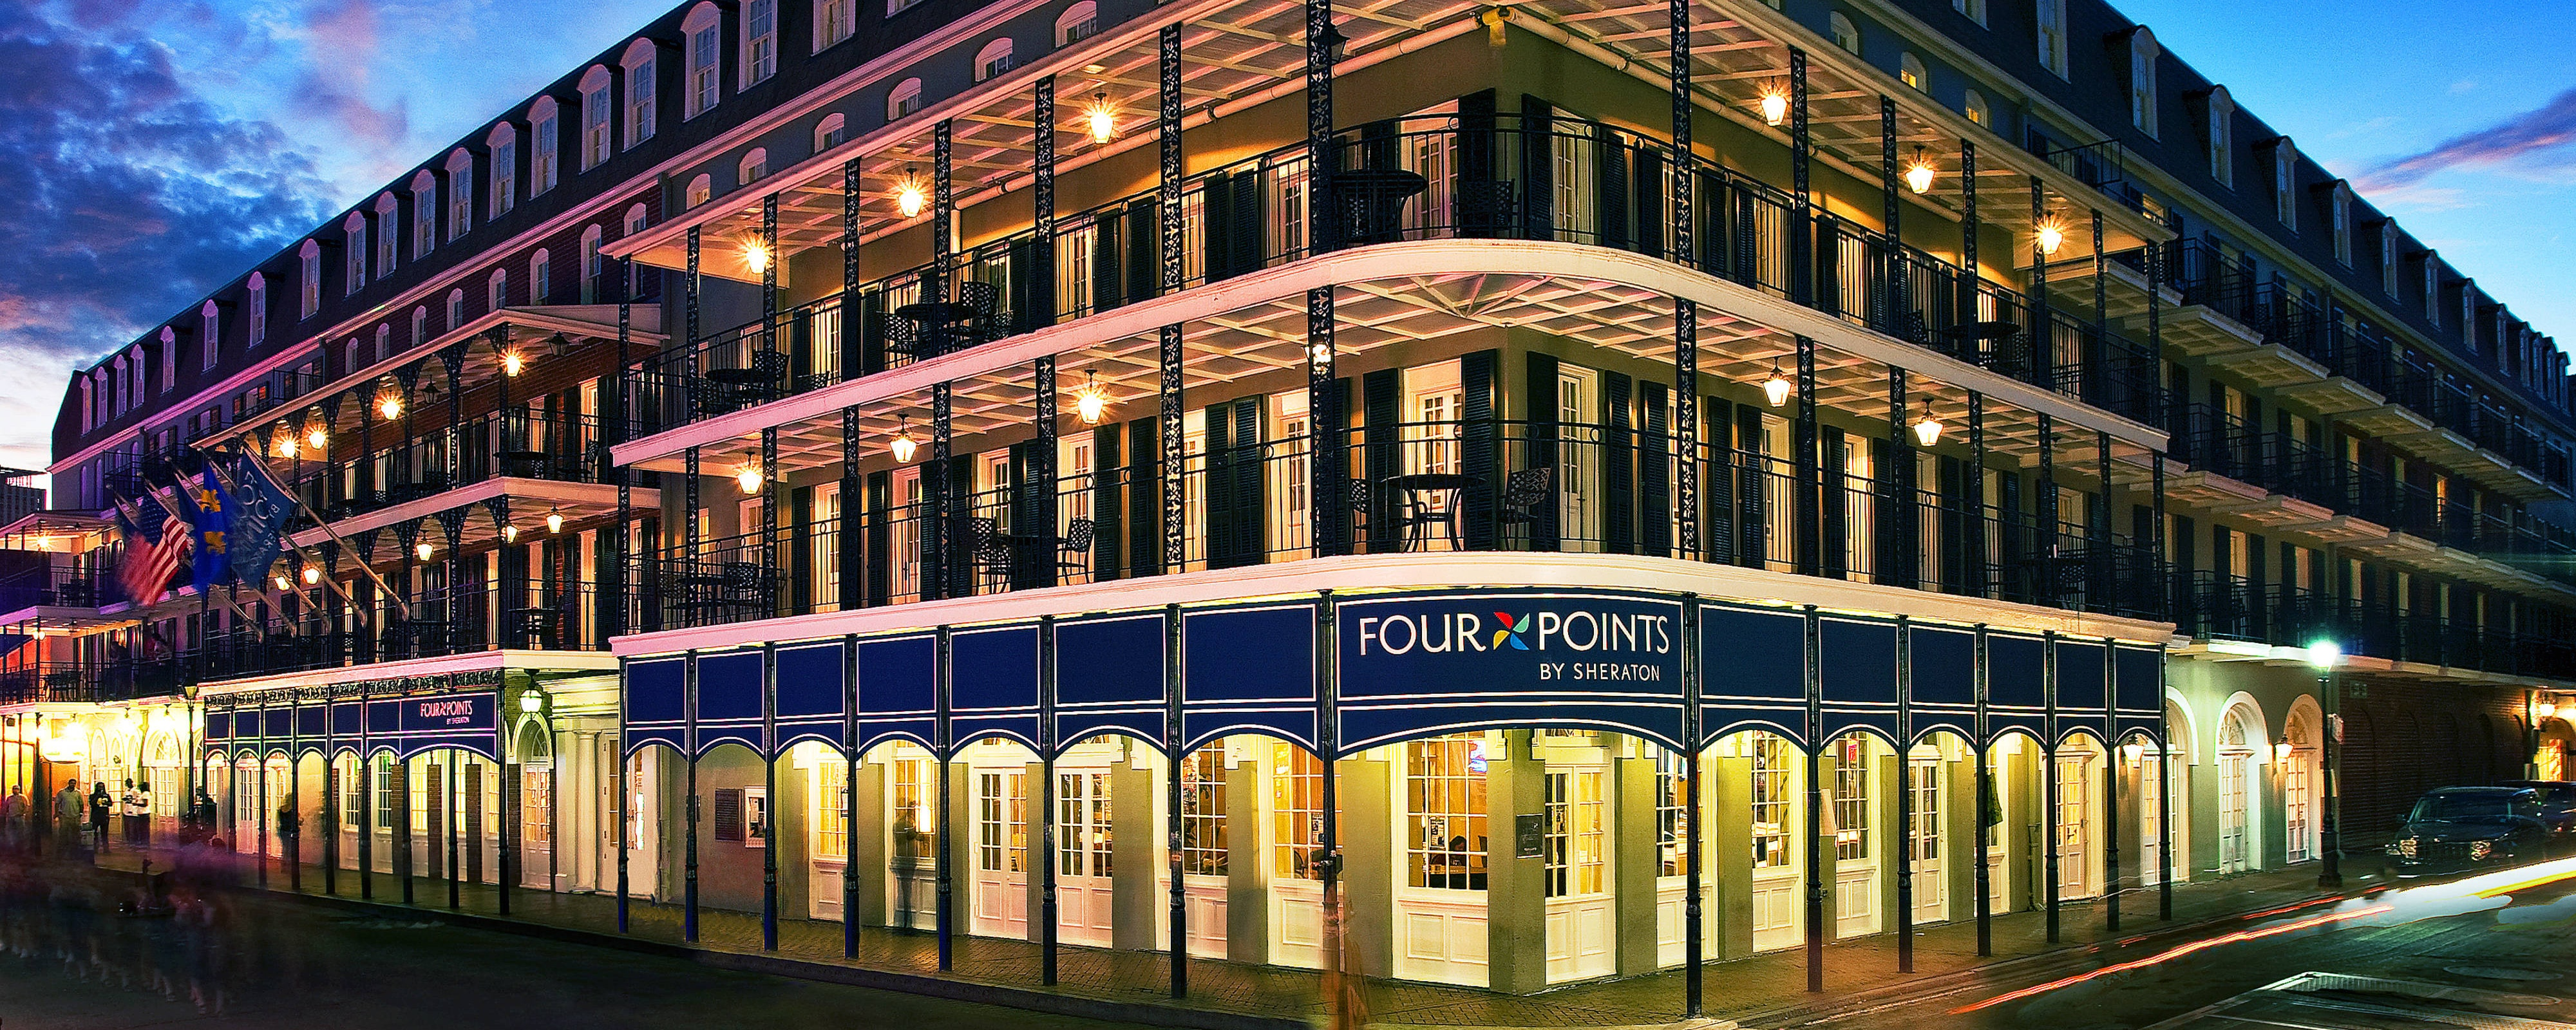 New Orleans Hotels >> French Quarter New Orleans Hotel Four Points By Sheraton